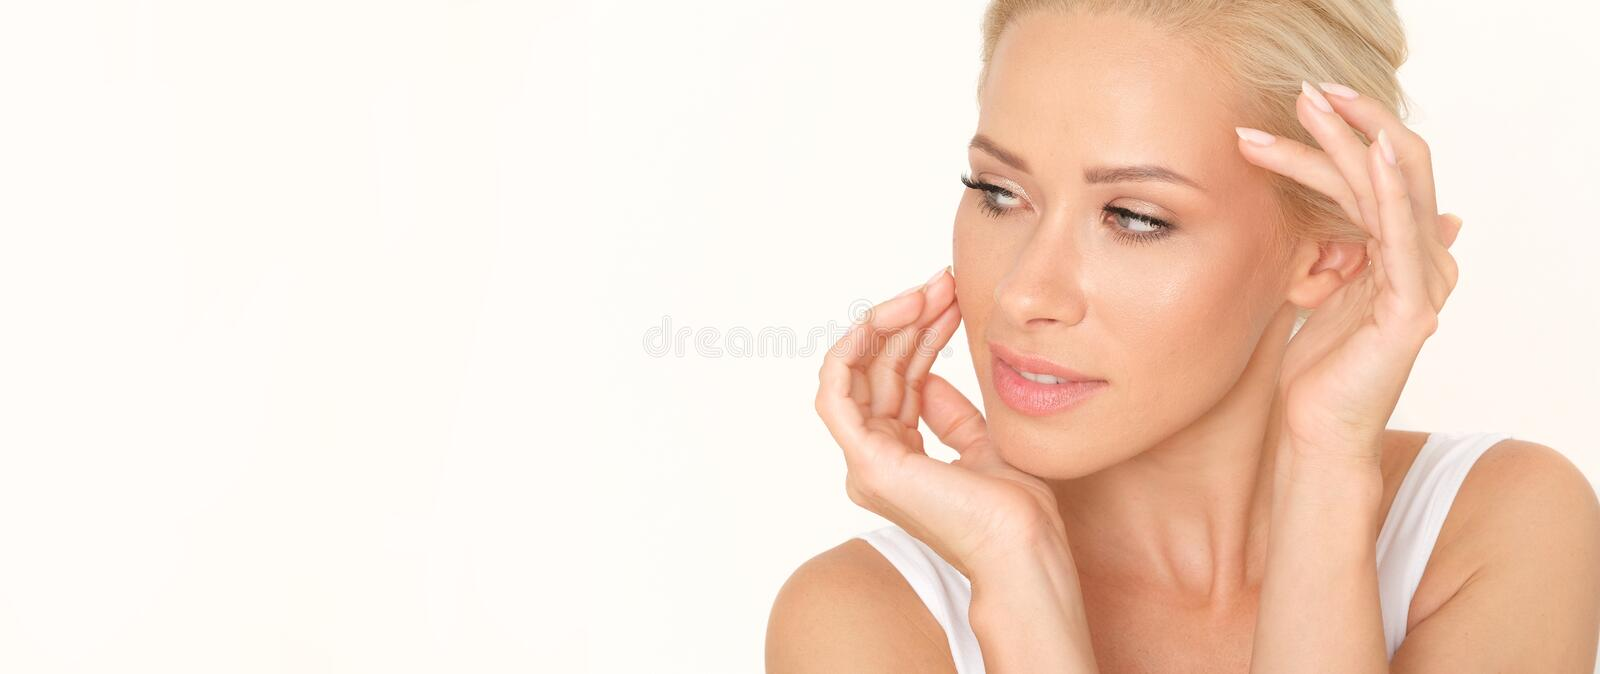 Beautiful blonde woman with a healthy and fresh complexion. Perfect treatment for glowing your skin. stock image